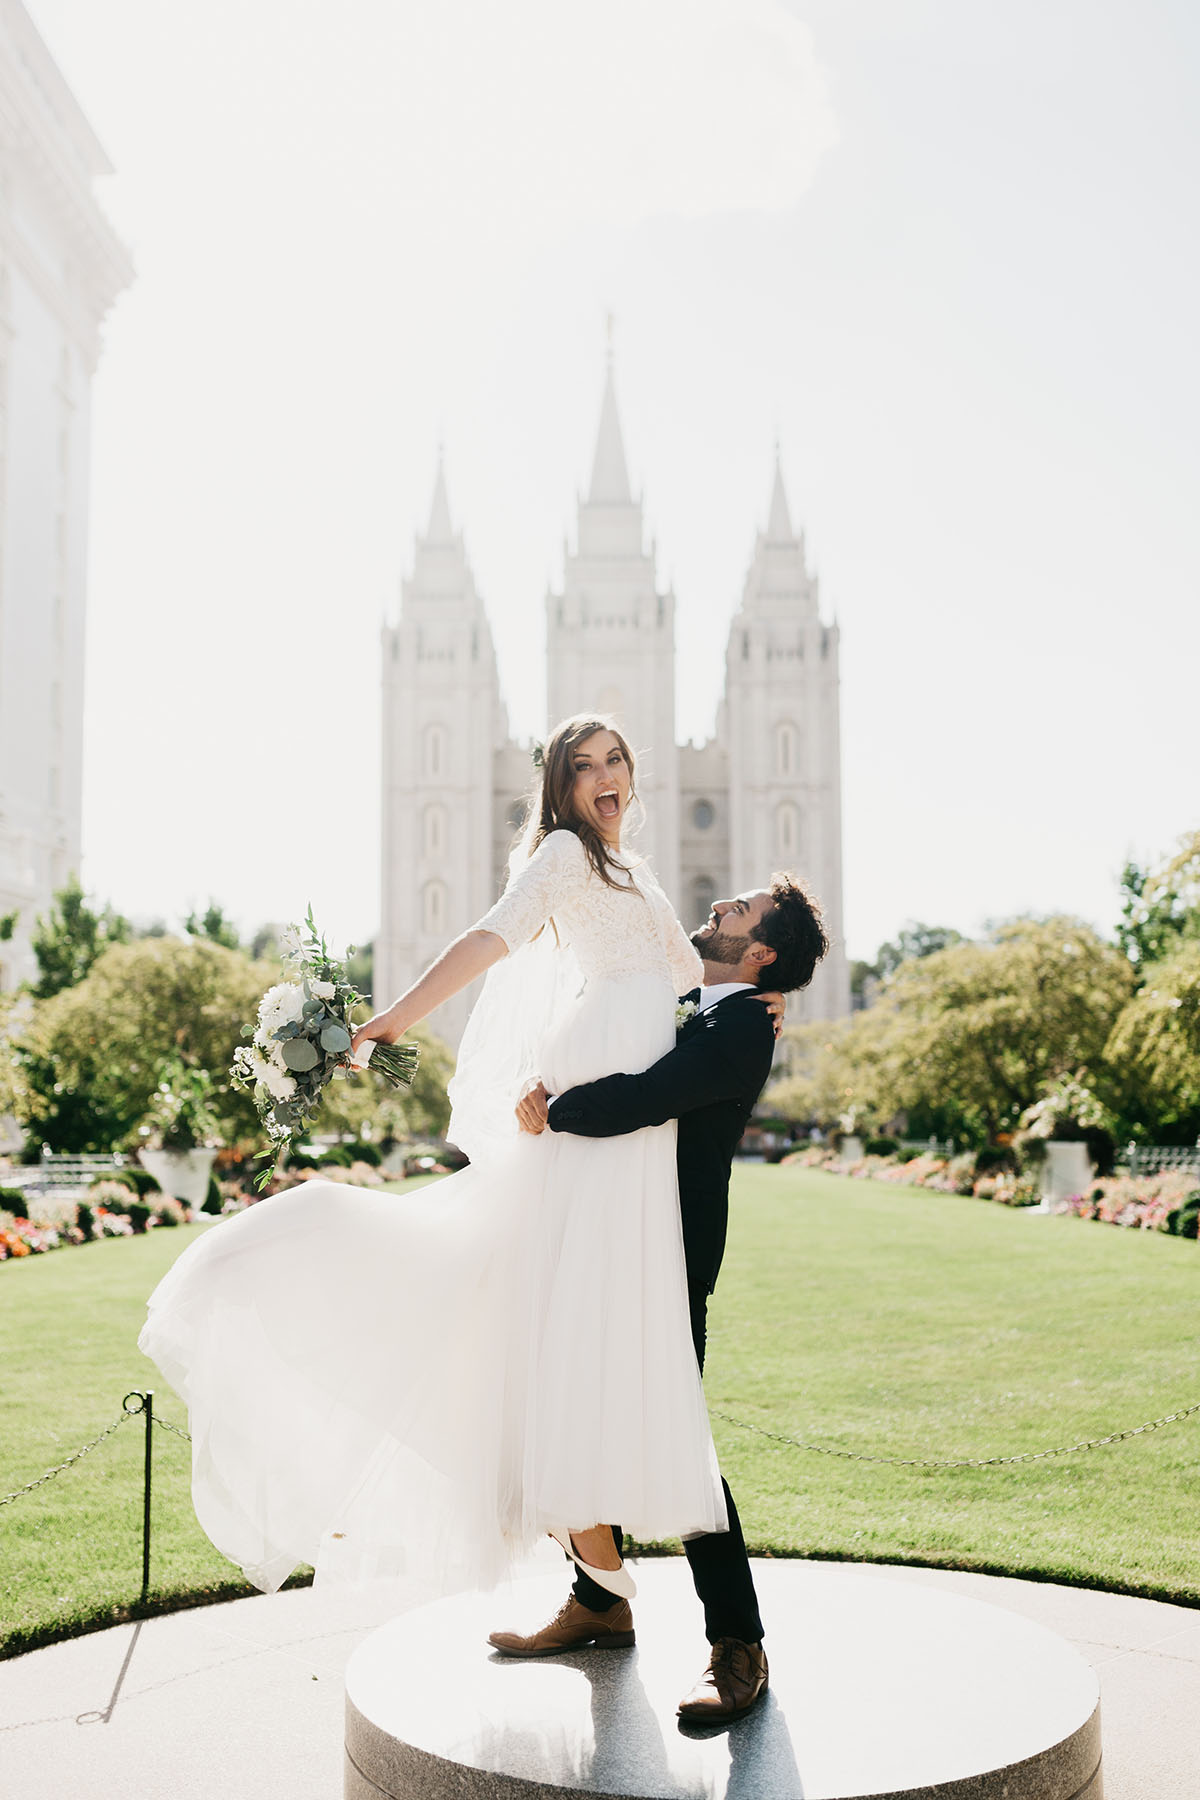 salt-lake-temple-wedding-chloemichael-nicoleastonphoto-186